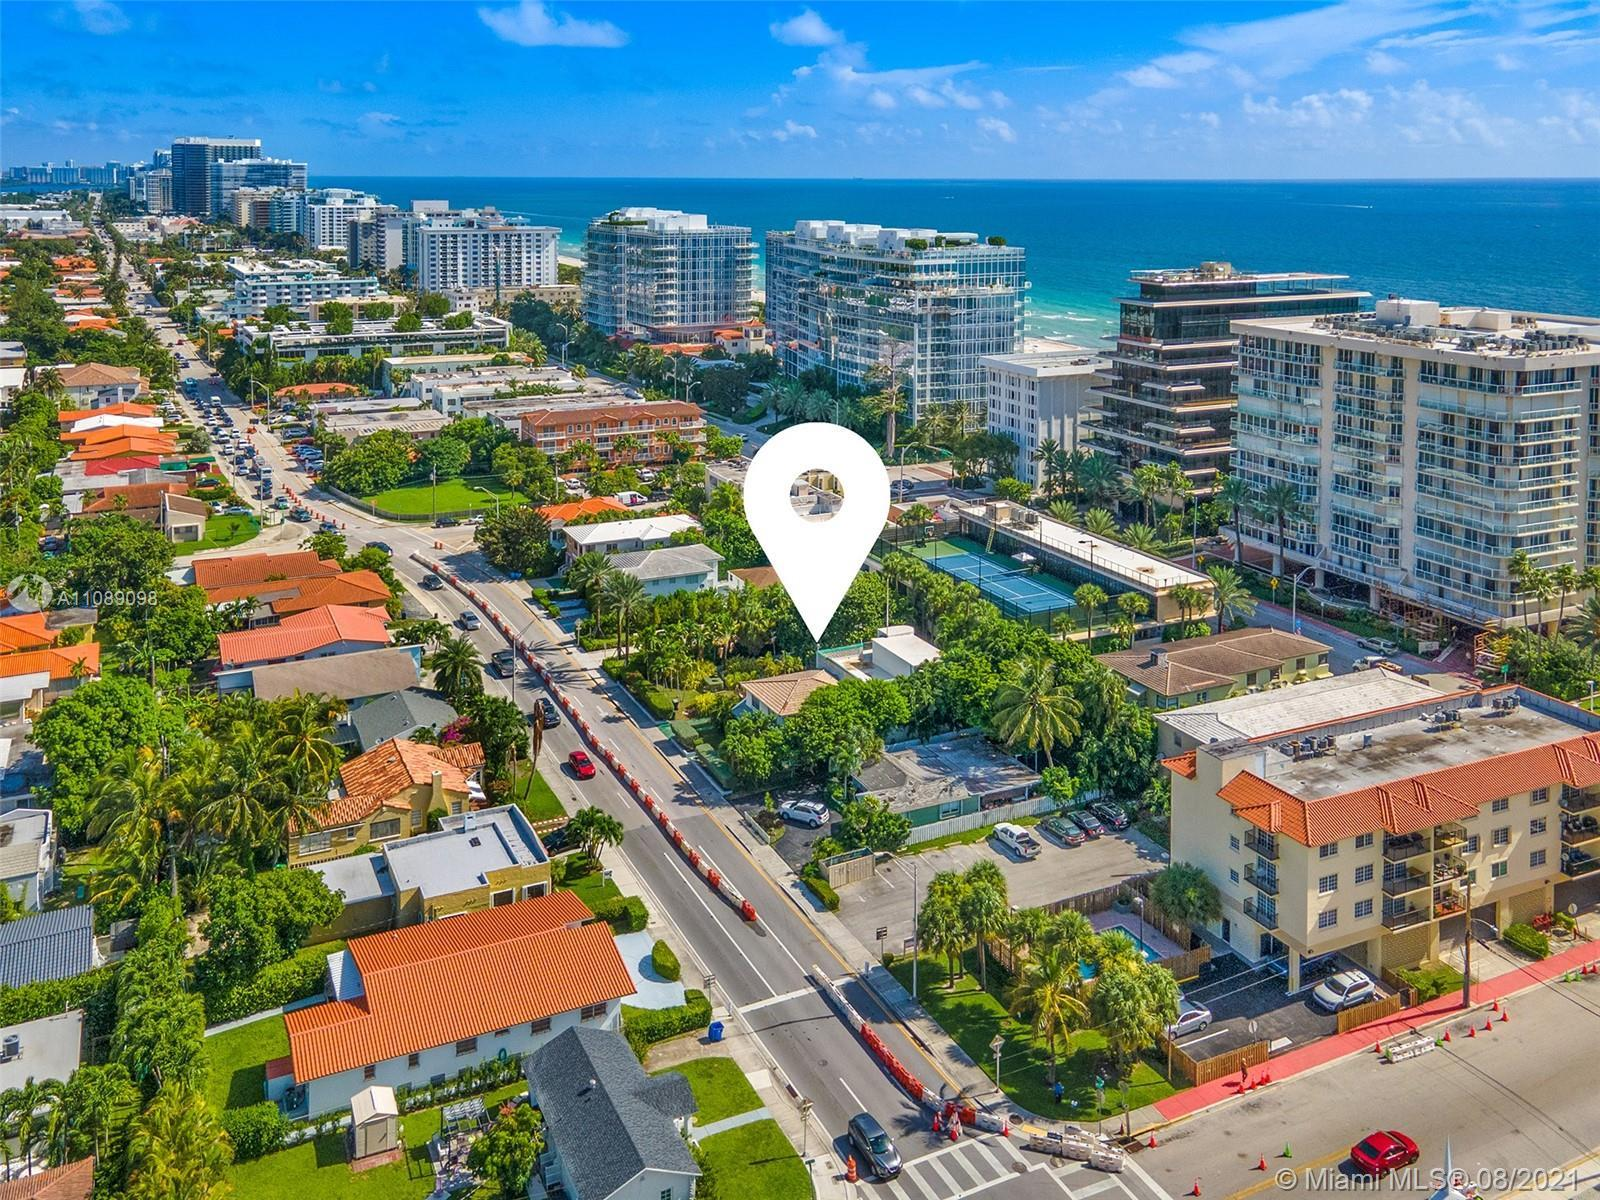 Development site for sale in SURFSIDE, one of the most desirable neighborhoods in Miami Beach. Doubl